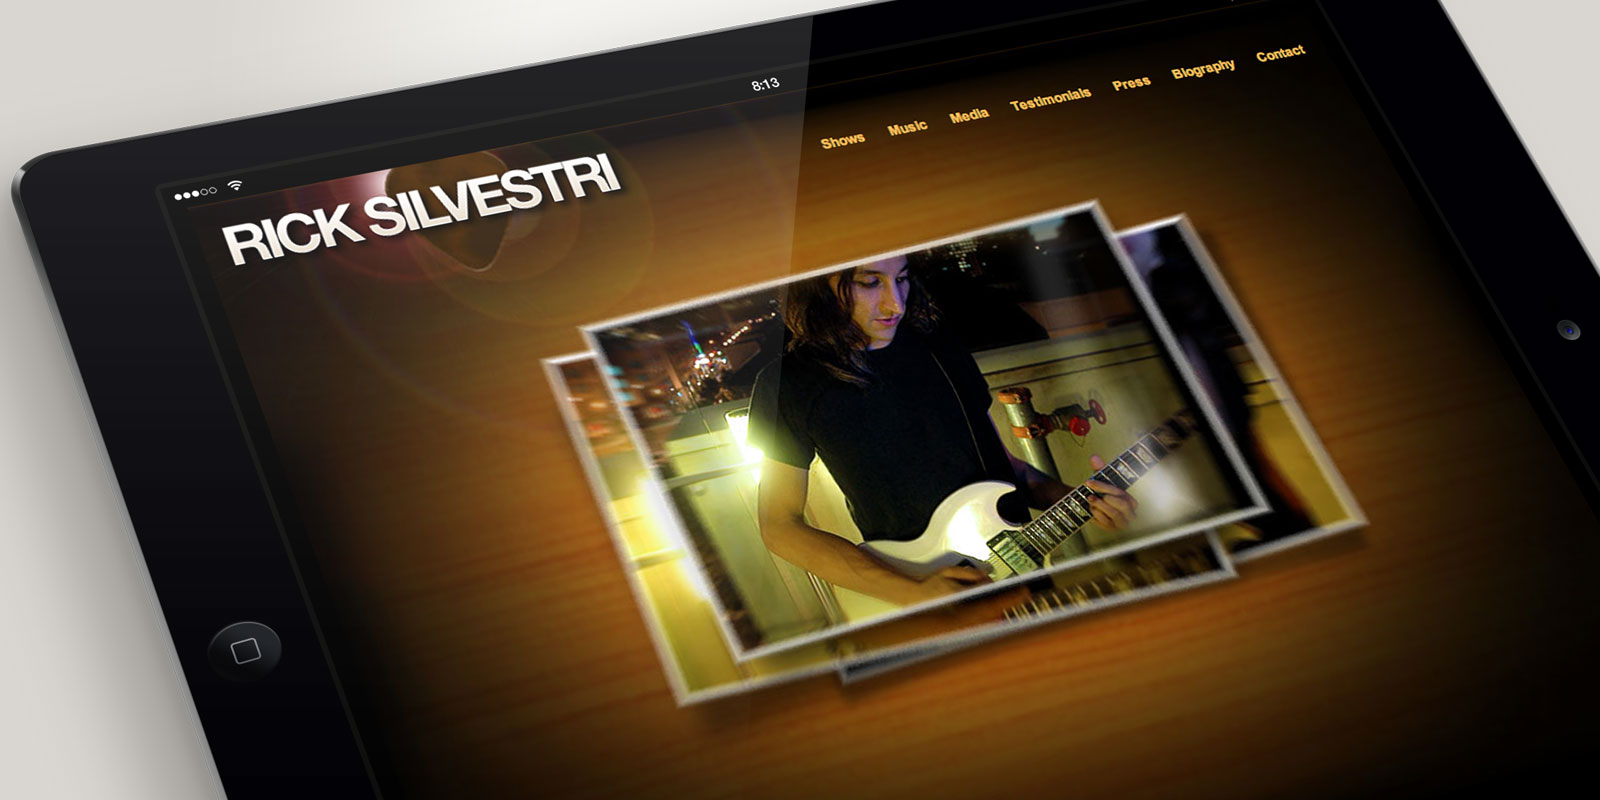 Rick Silvestri website